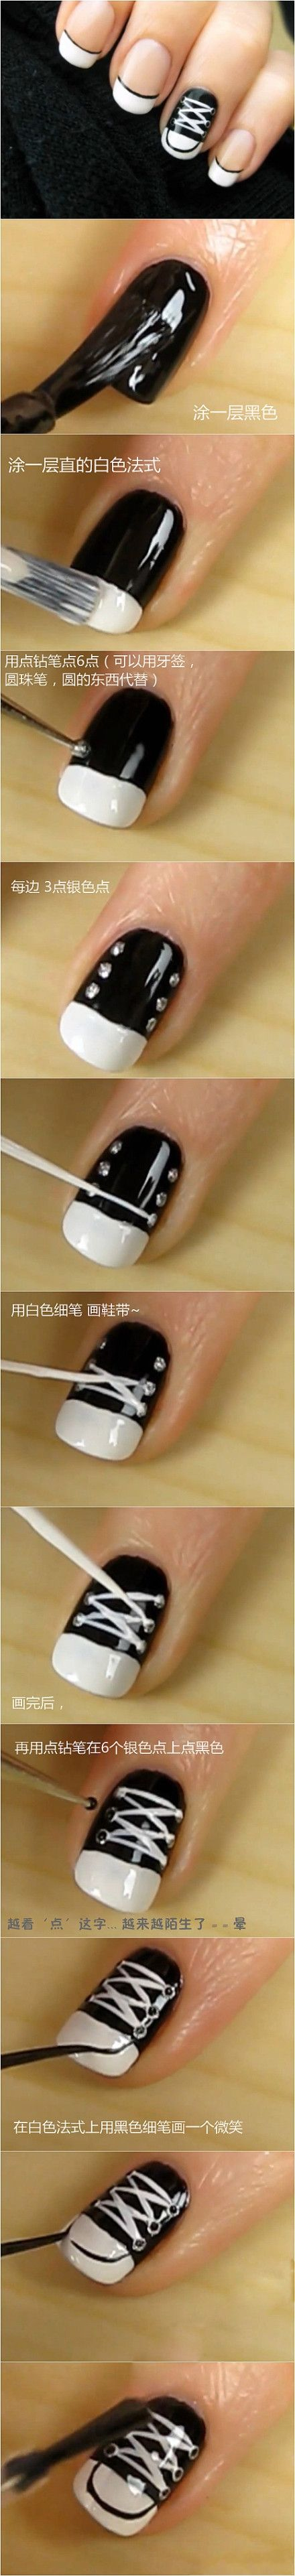 CONVERSE SHOE NAIL DESIGN-click on pic step by step supper easy(another) great nail design on cons